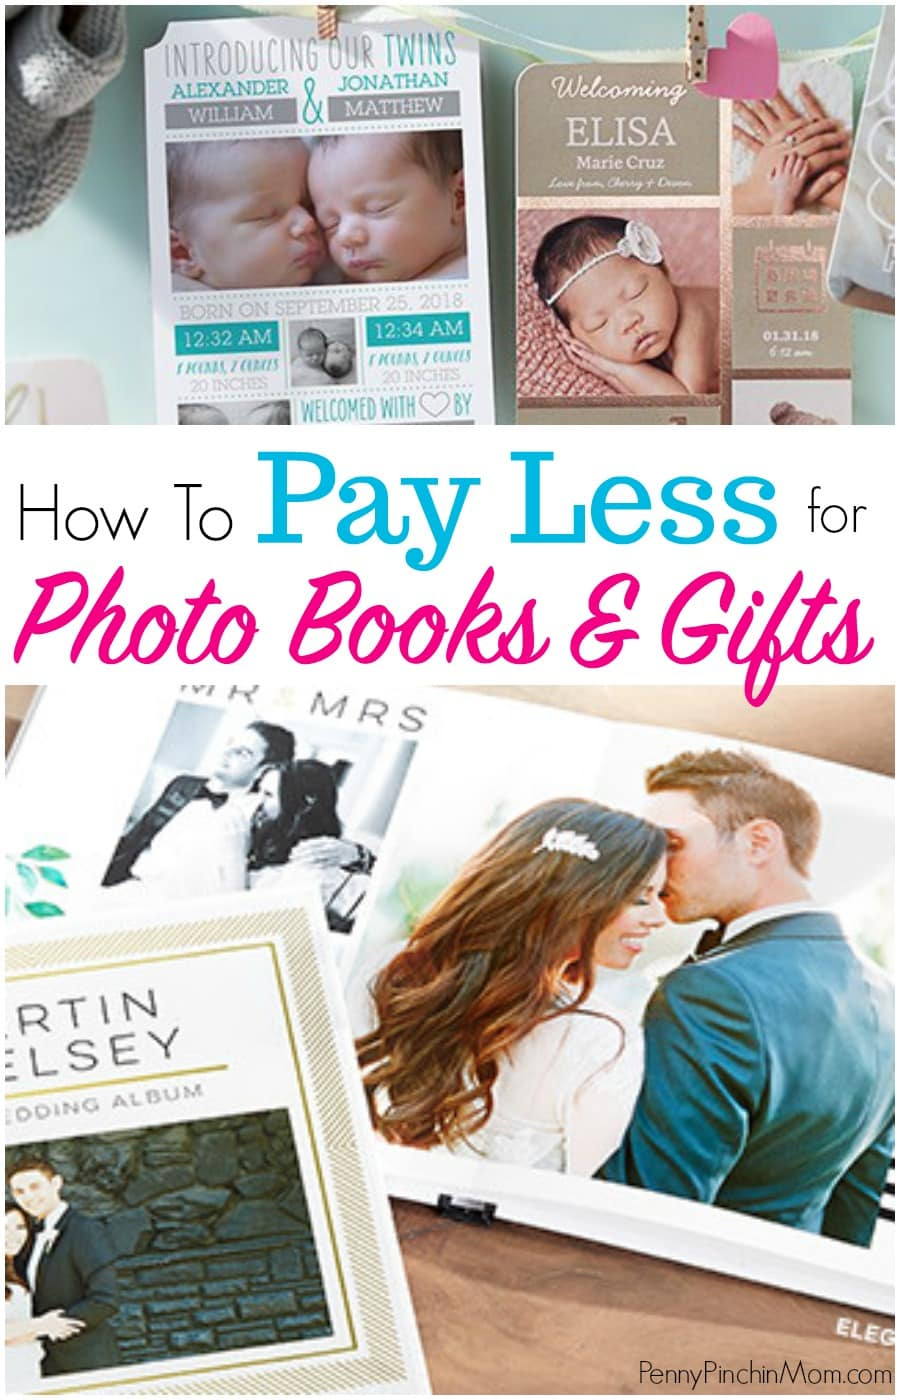 Shutterfly Promo Codes And Free Shipping Offers